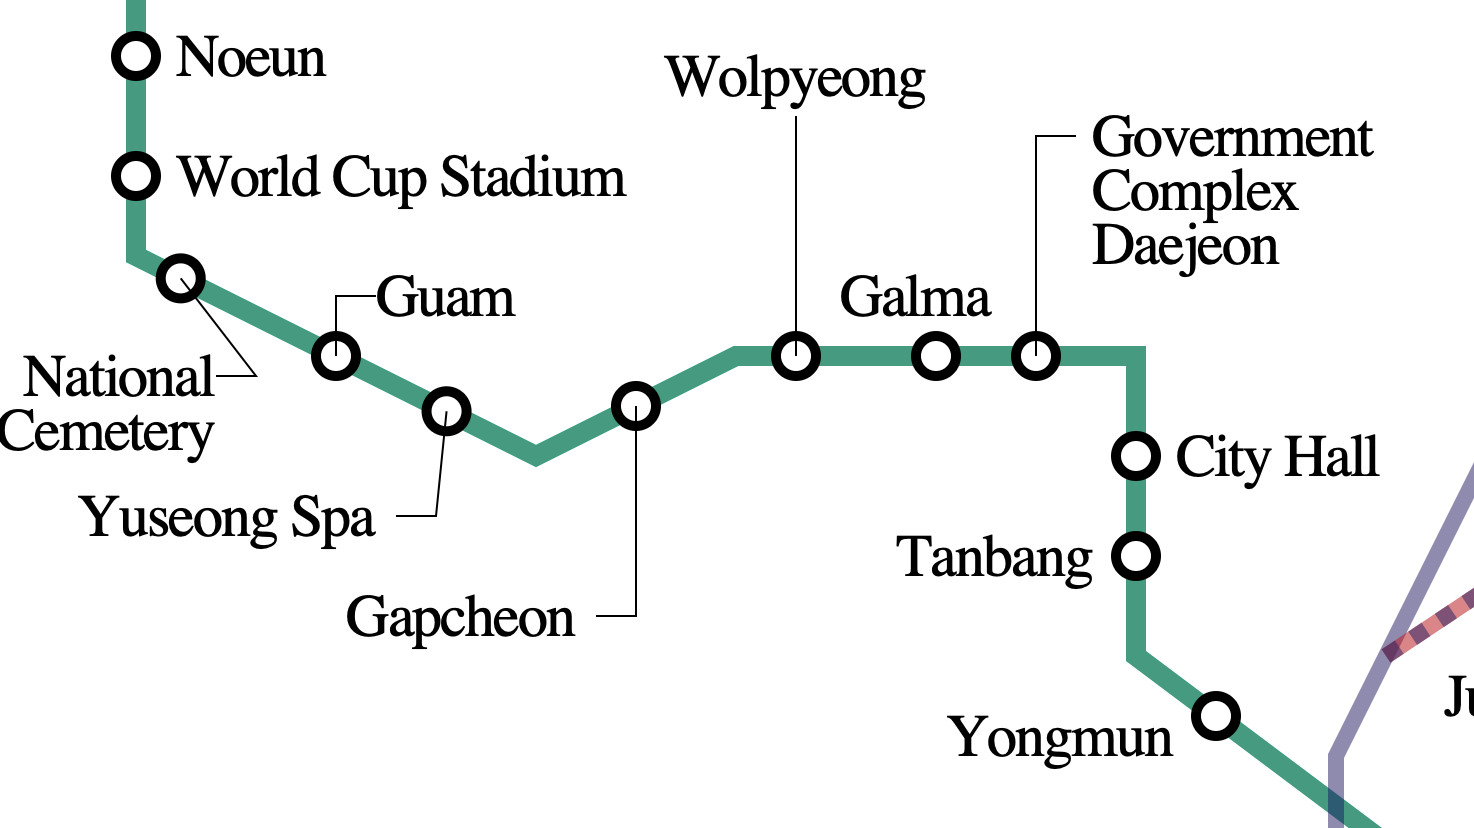 North Korean Subway Map.Daejeon Metro Transport Wiki